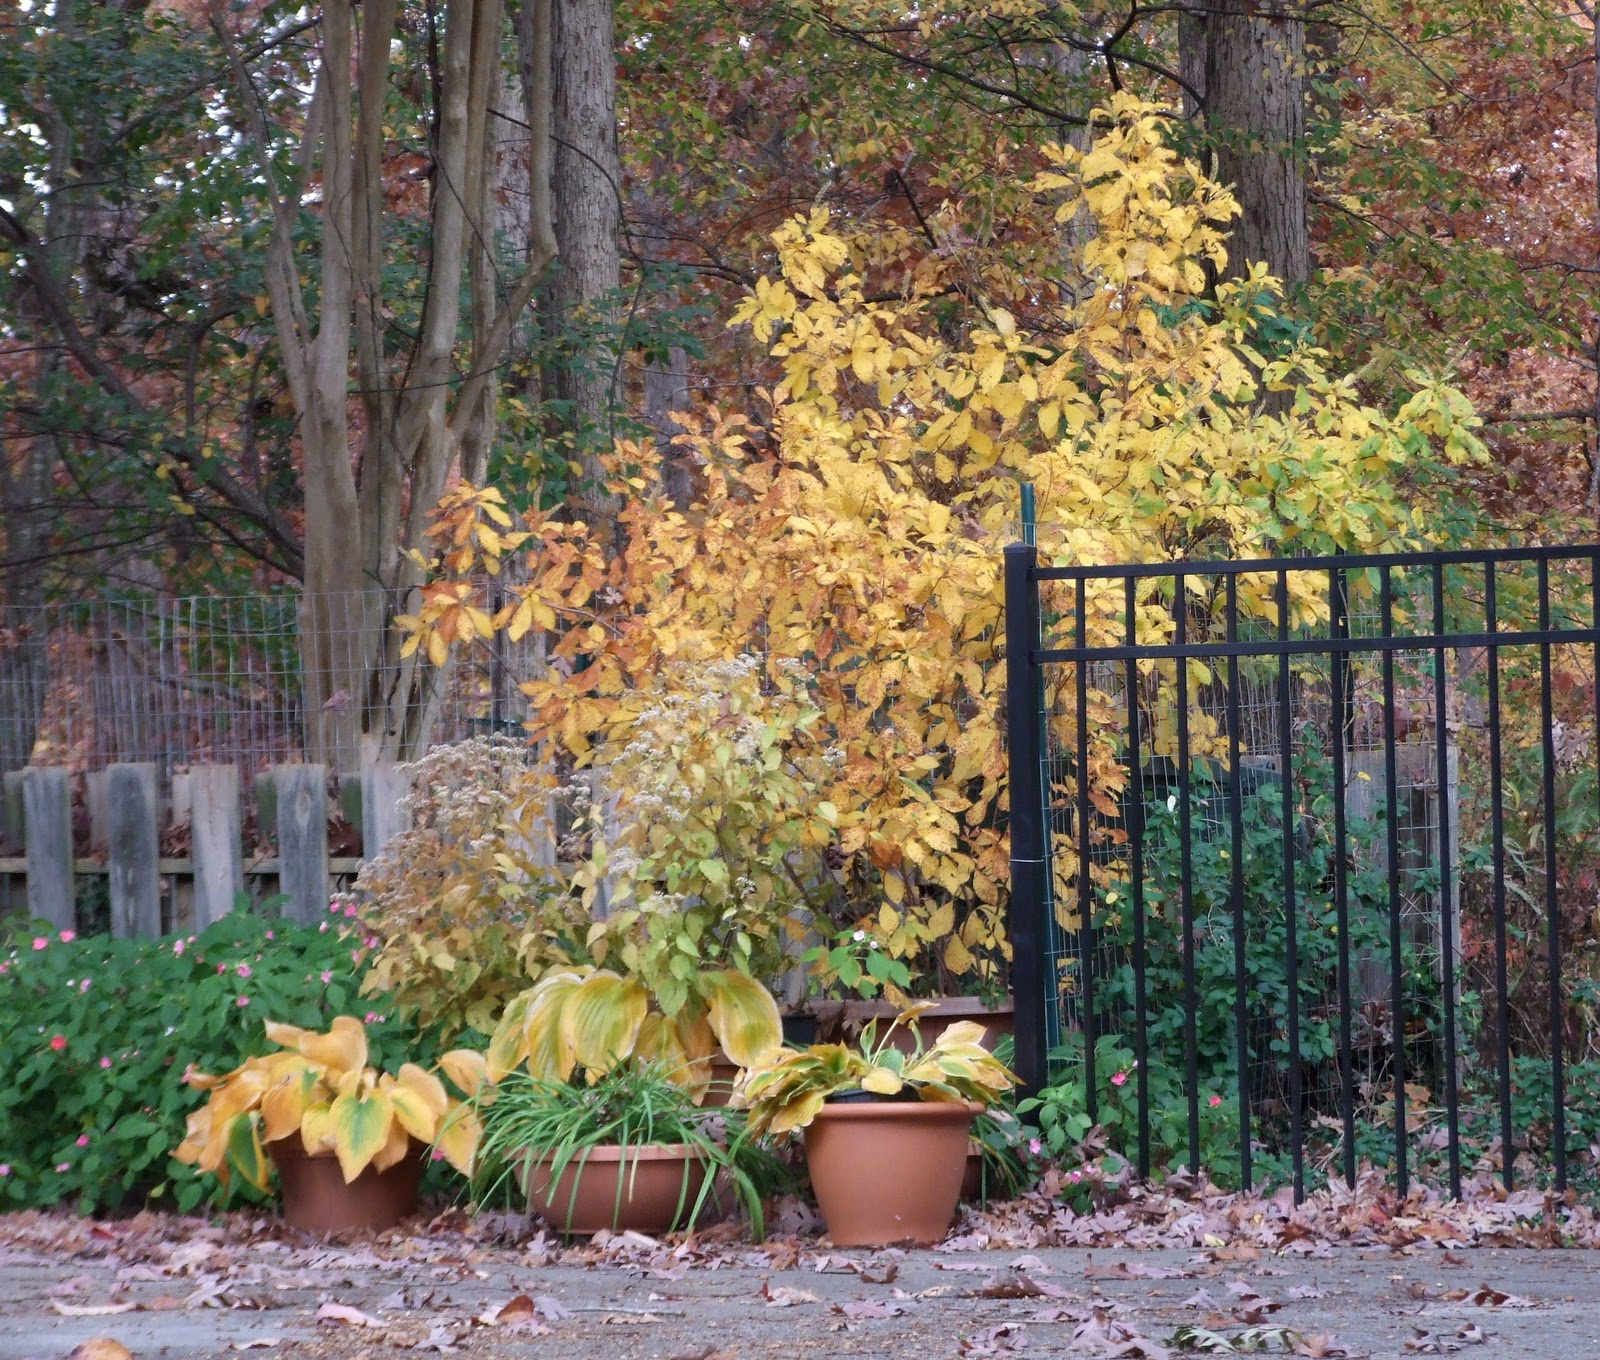 near the black fence at the entry to the backyard